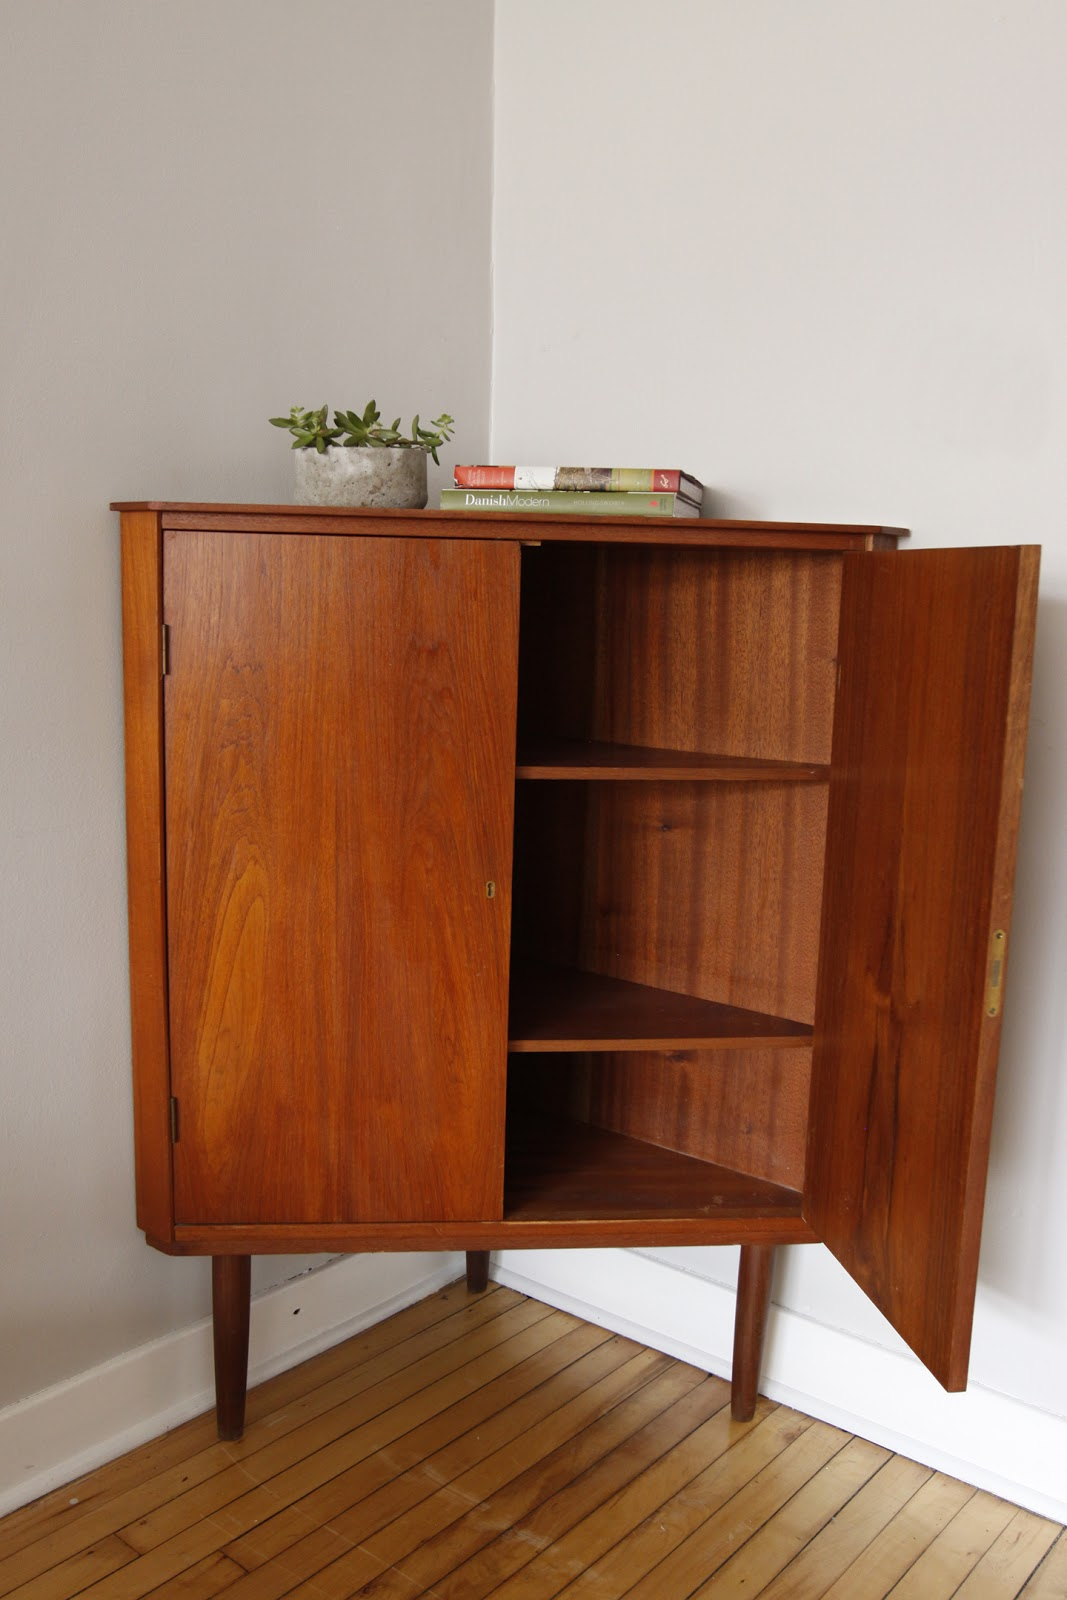 Danish Modern Corner Cabinet Clad In Teak Excellent Vintage Condition This Has Beautiful Br Skeleton Key Holes That Lock The